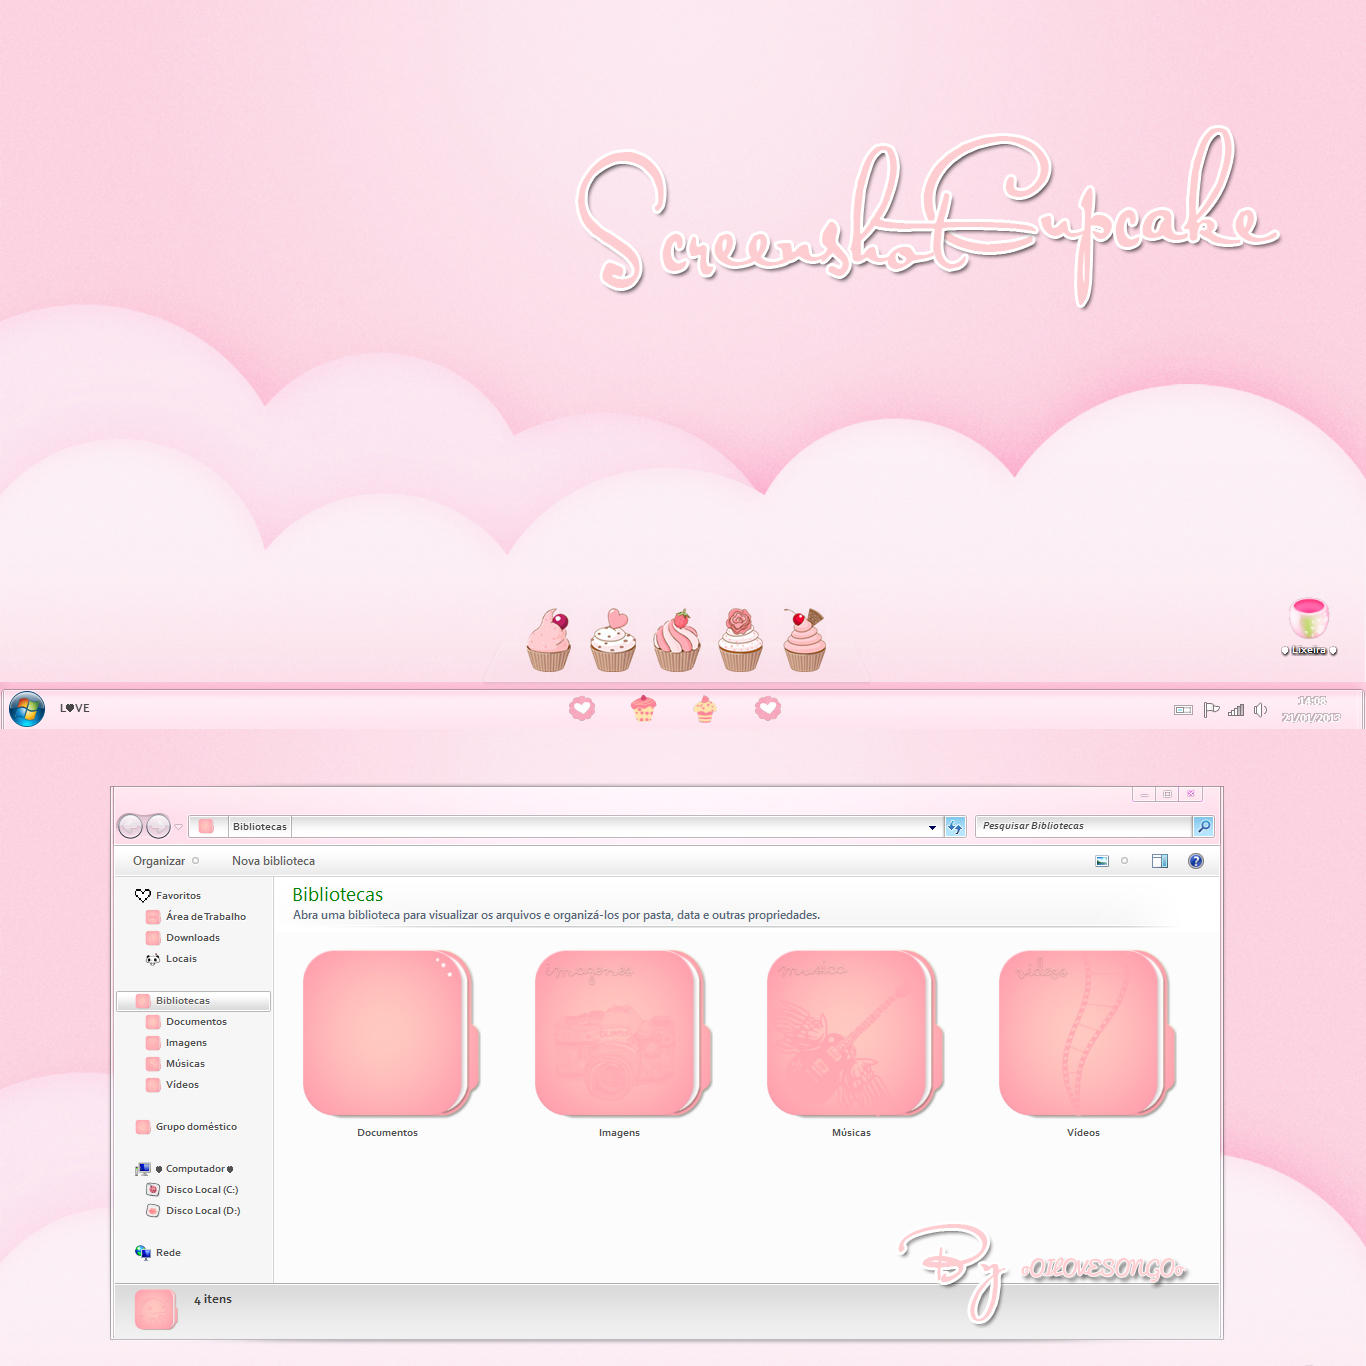 Screenshot Cupcake ( Windows 7 ) by oOILOVESONGOo